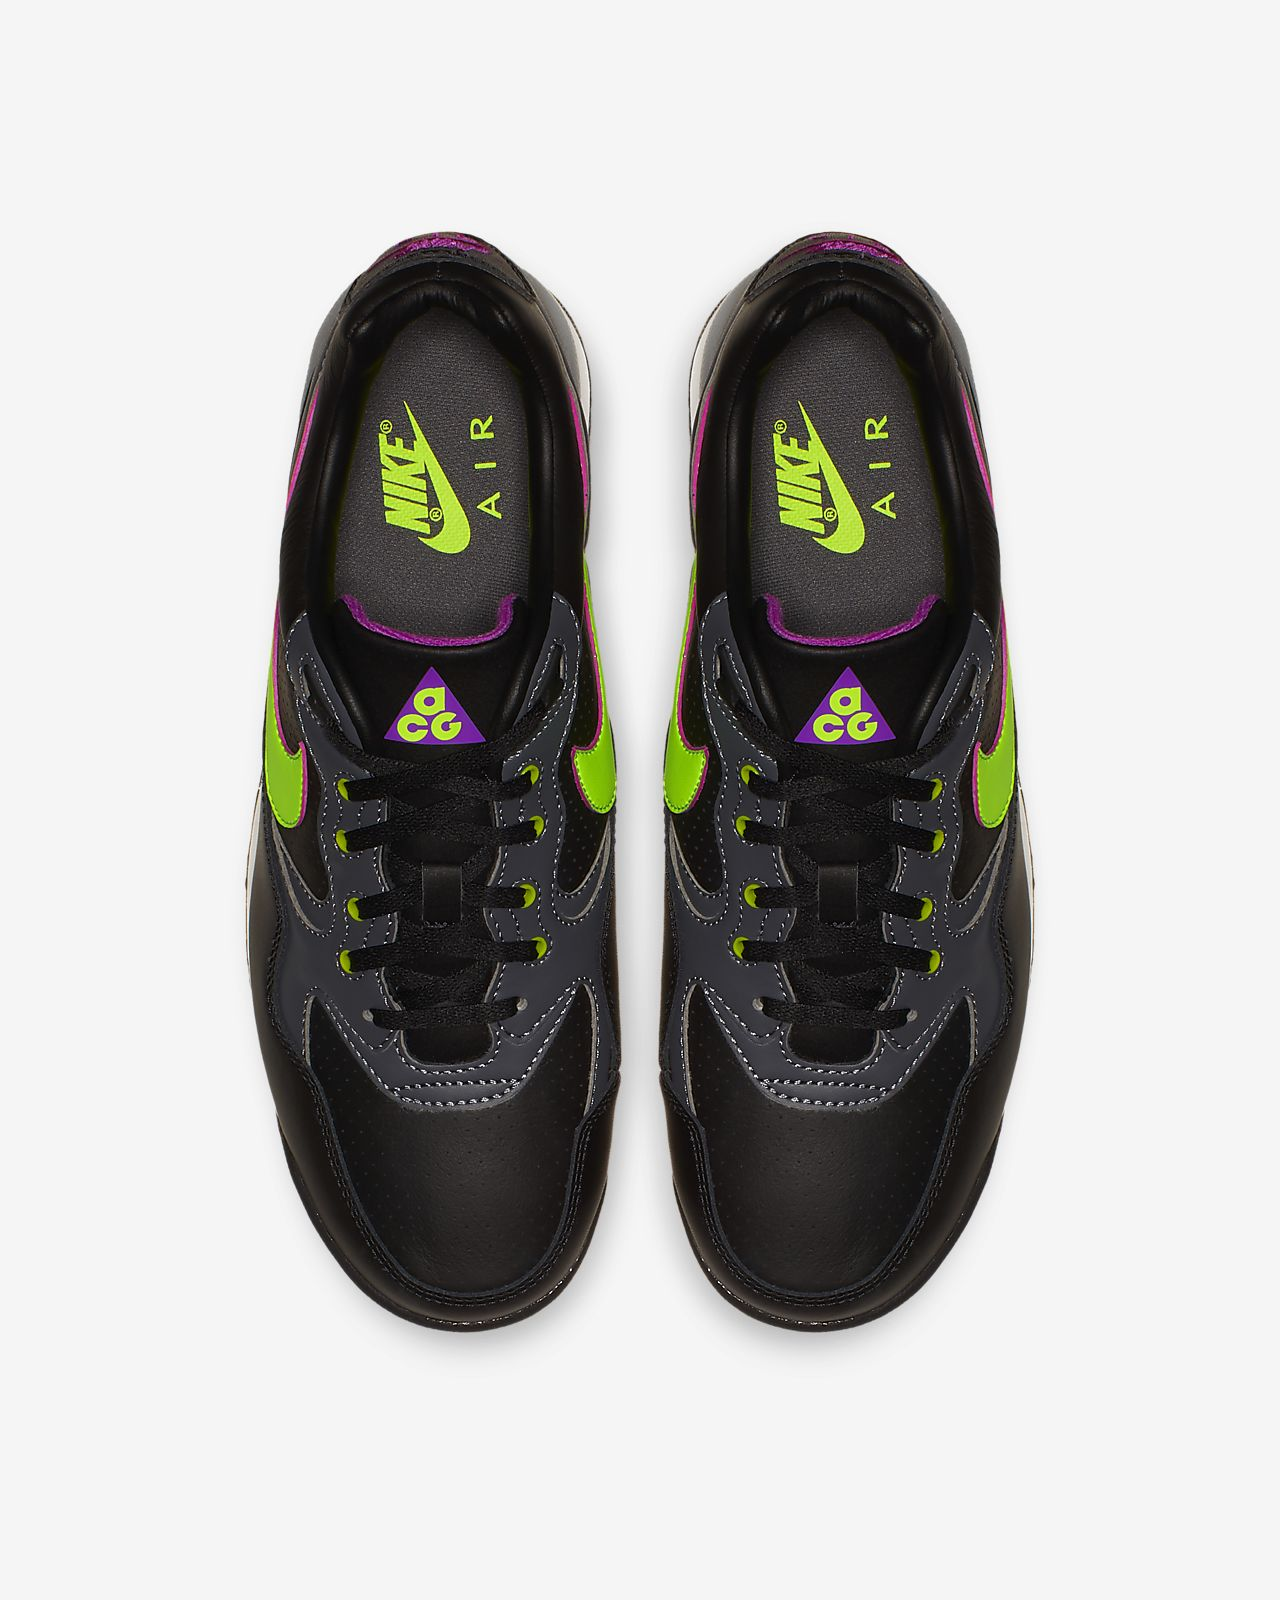 Chaussure Acg Pour Nike Wildwood Air Homme 0Nnmwv8